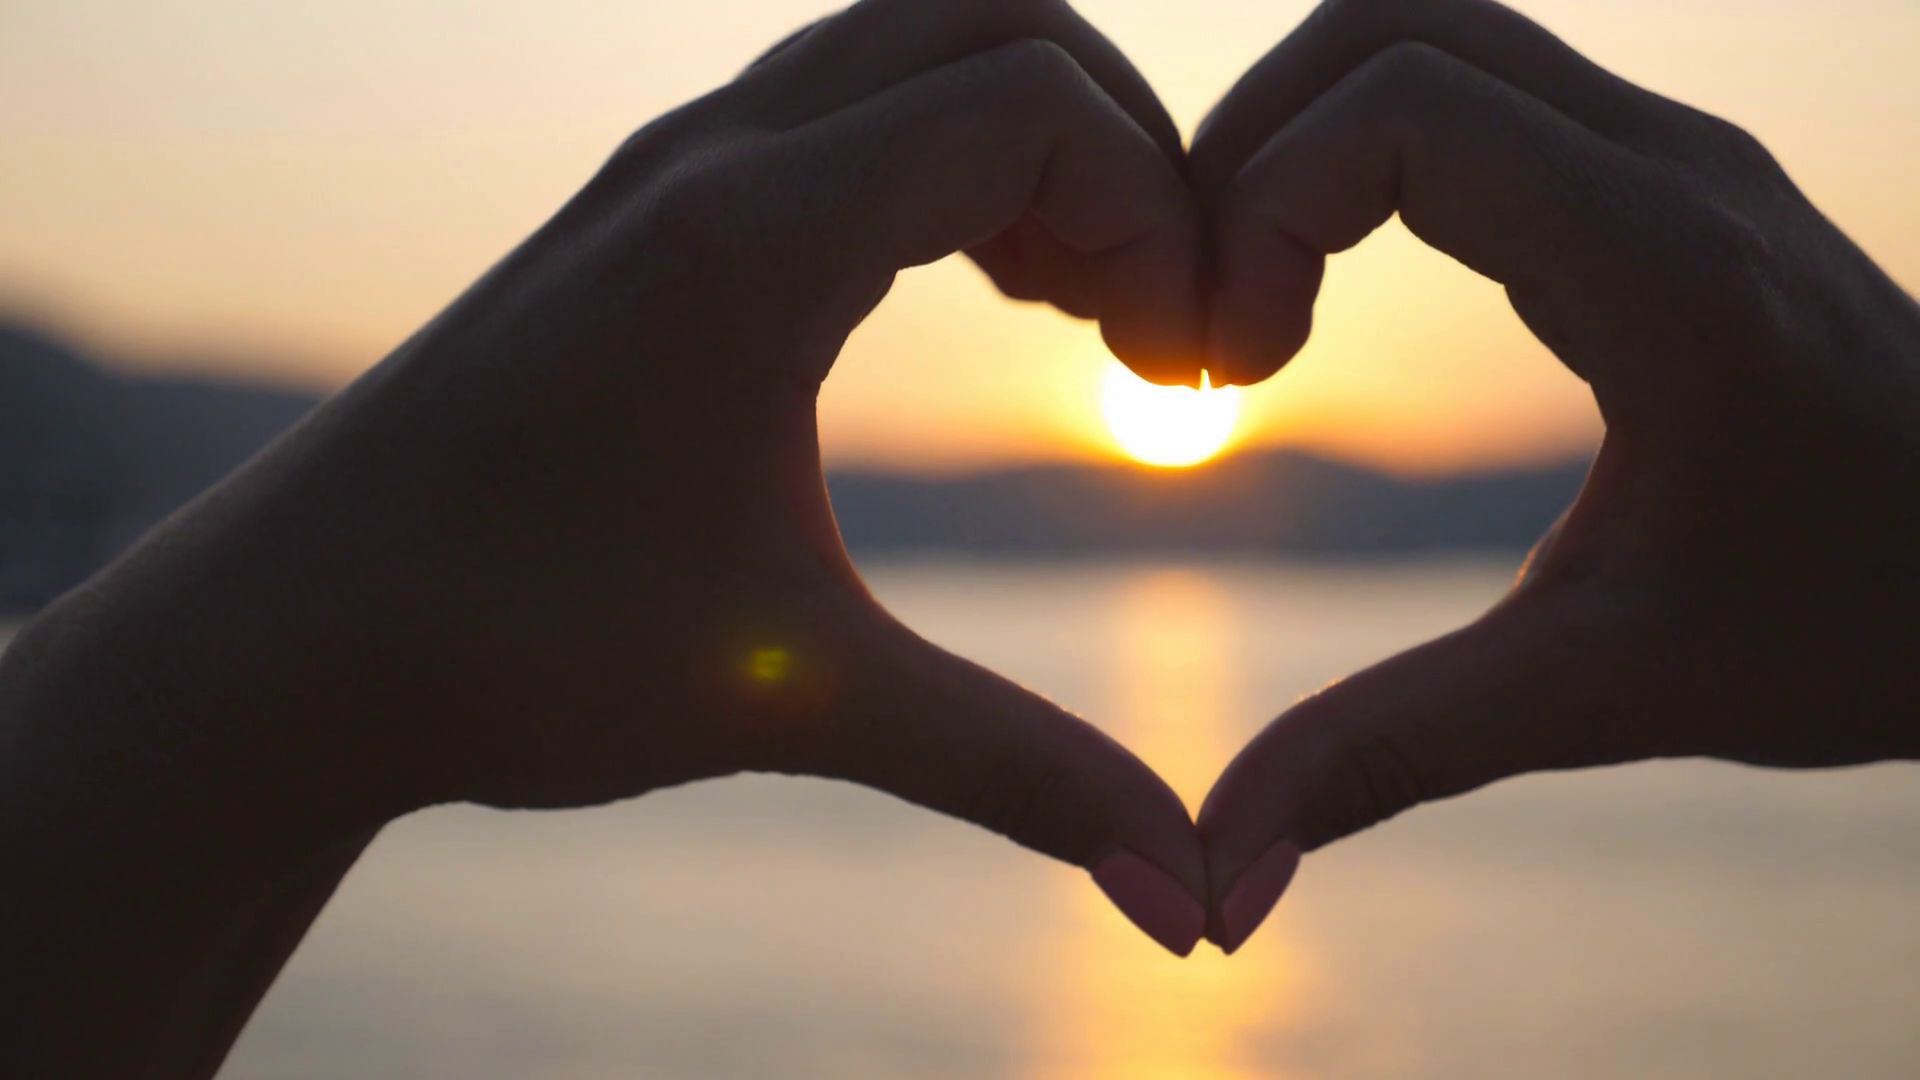 videoblocks-silhouette-of-young-female-hands-making-heart-shape-over-sea-background-with-beautiful-sunset-concept-of-summer-vacation-close-up-slow-motion_rxxtqhyrg_thumbnail-full12.png